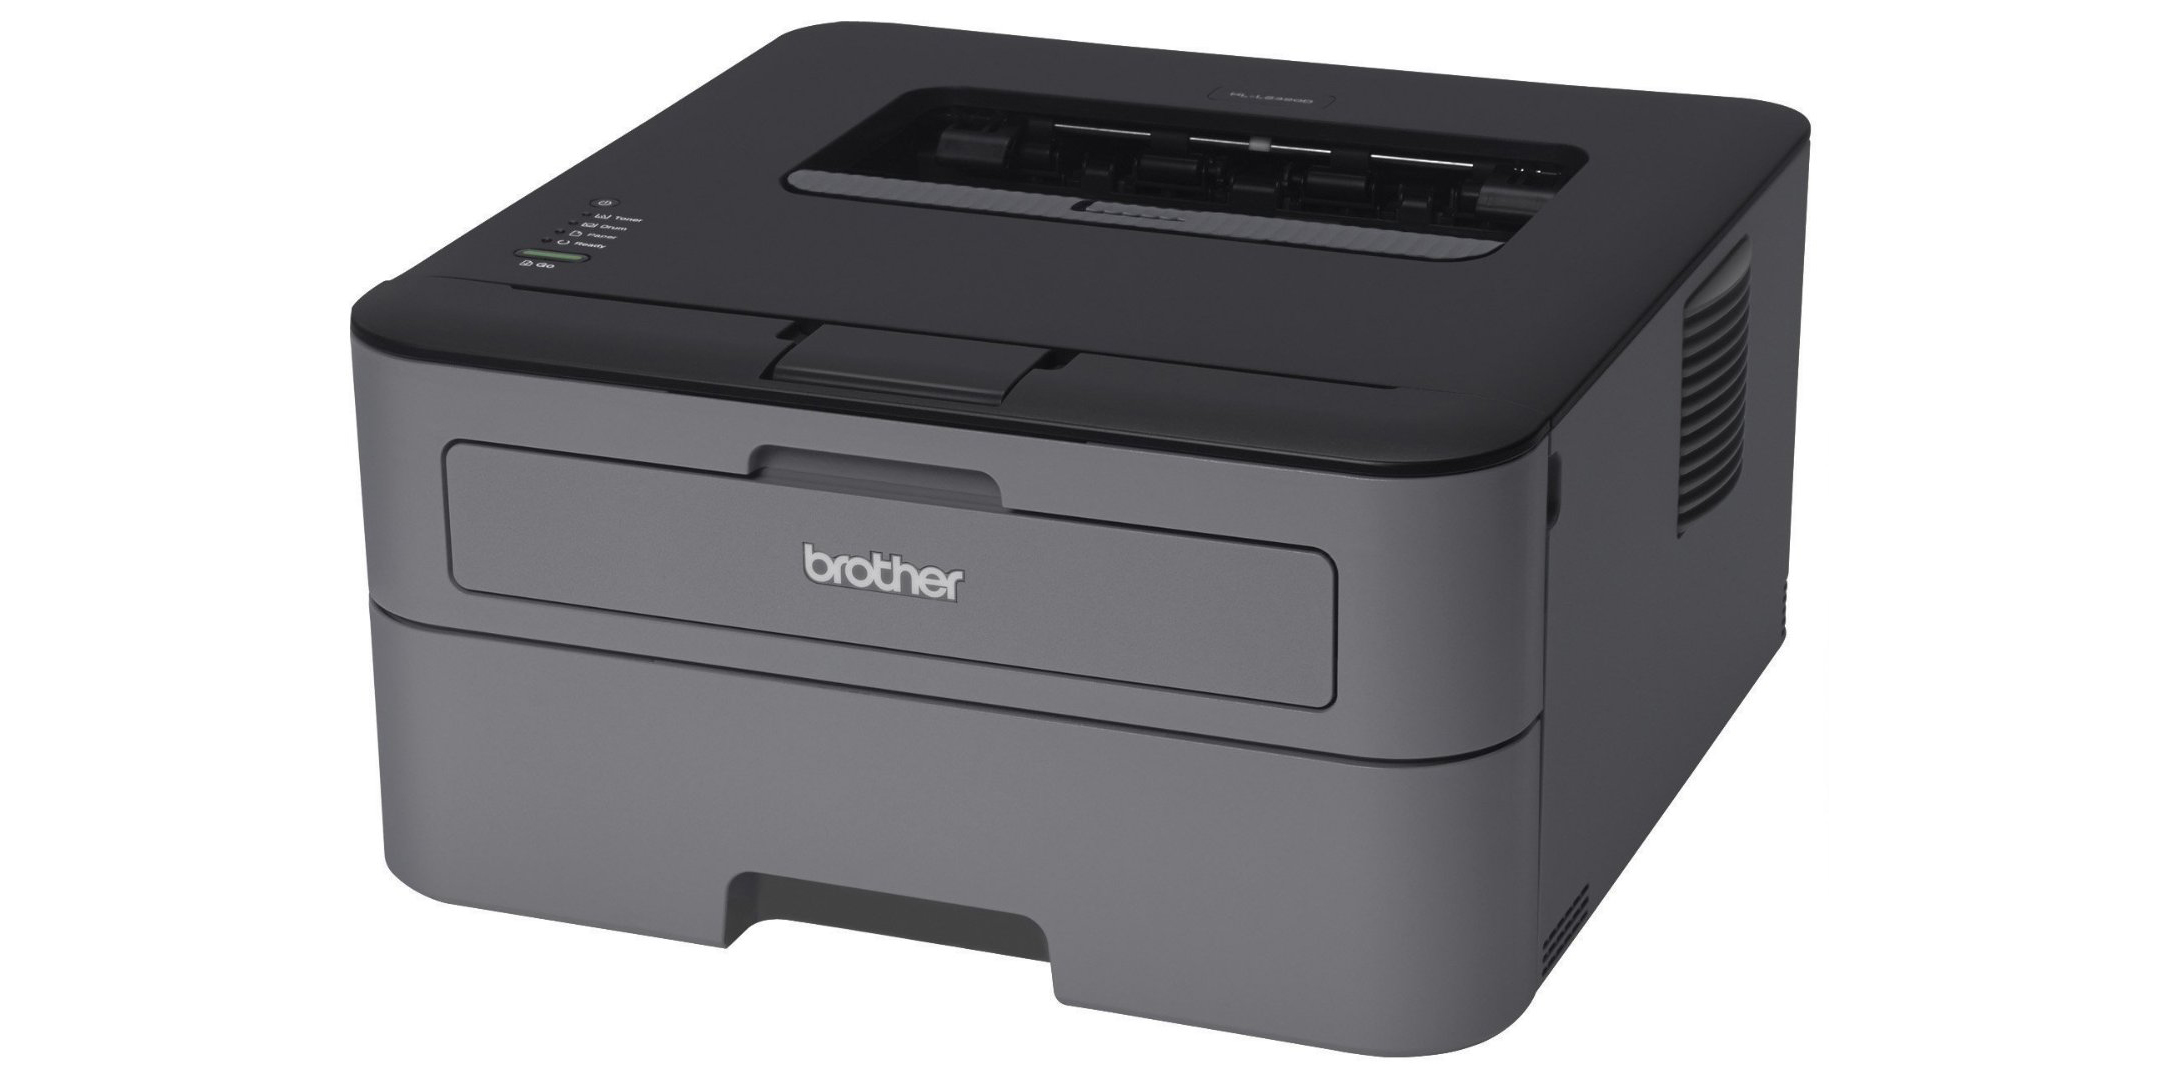 Tax season is just around the corner, pick up this Brother Laser Printer for $55 (Reg. $80)